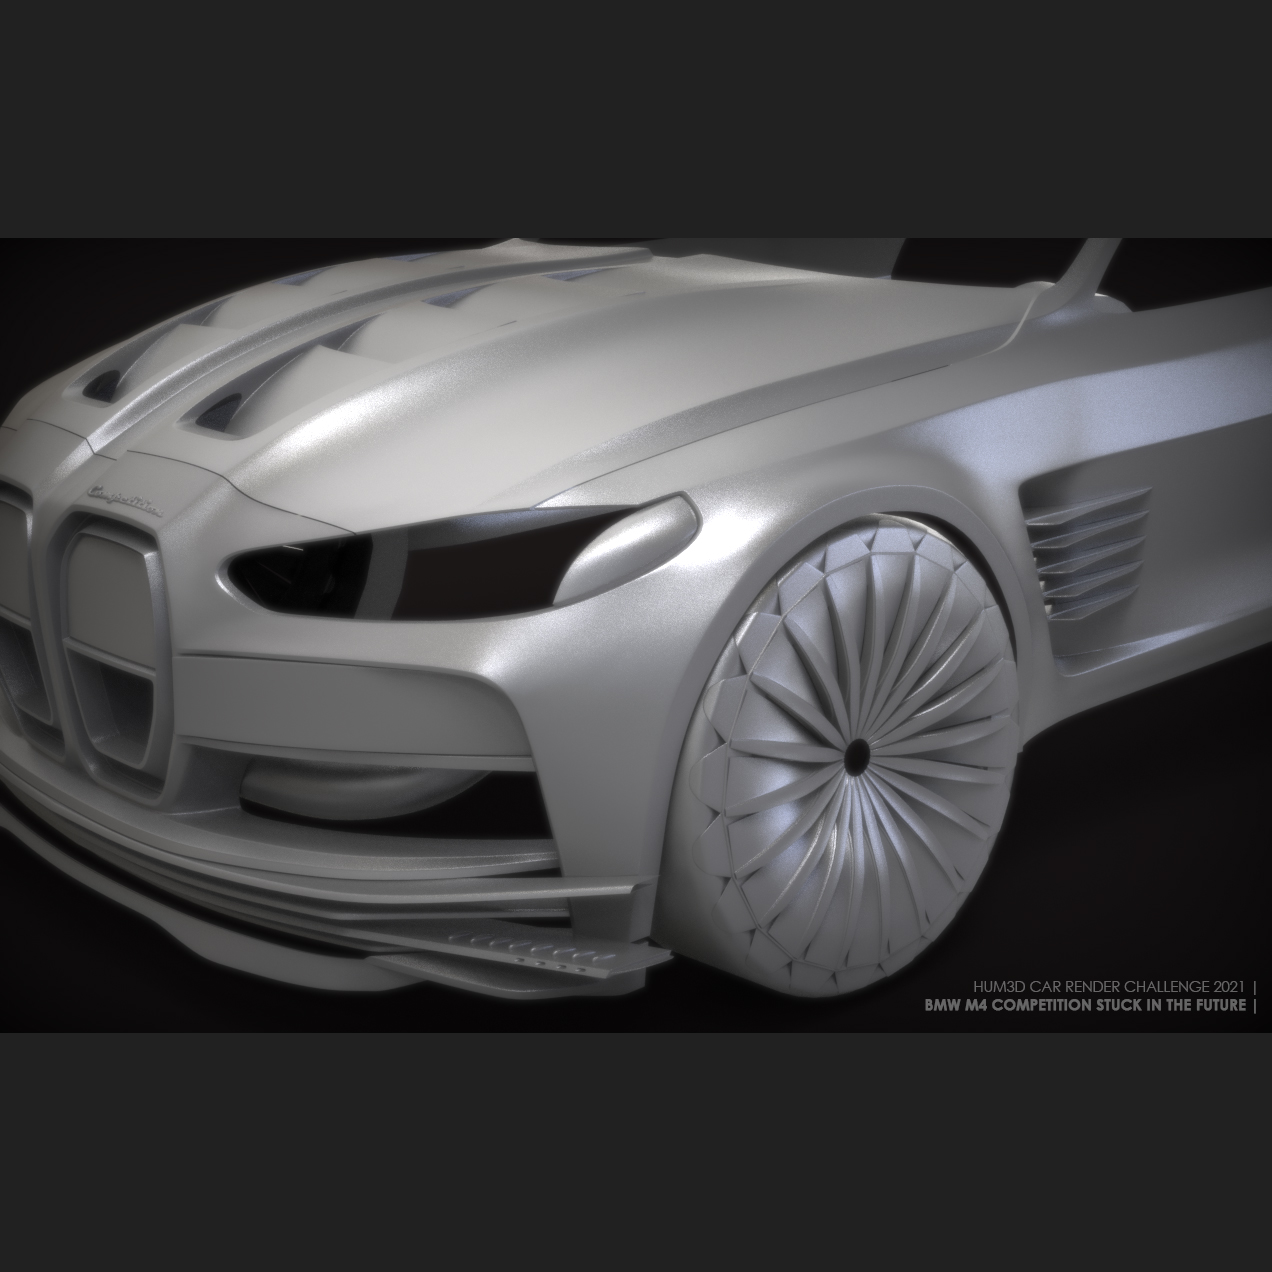 Car Render Challenge 2021 - BMW M4 Competition 2021 - Stuck in the future